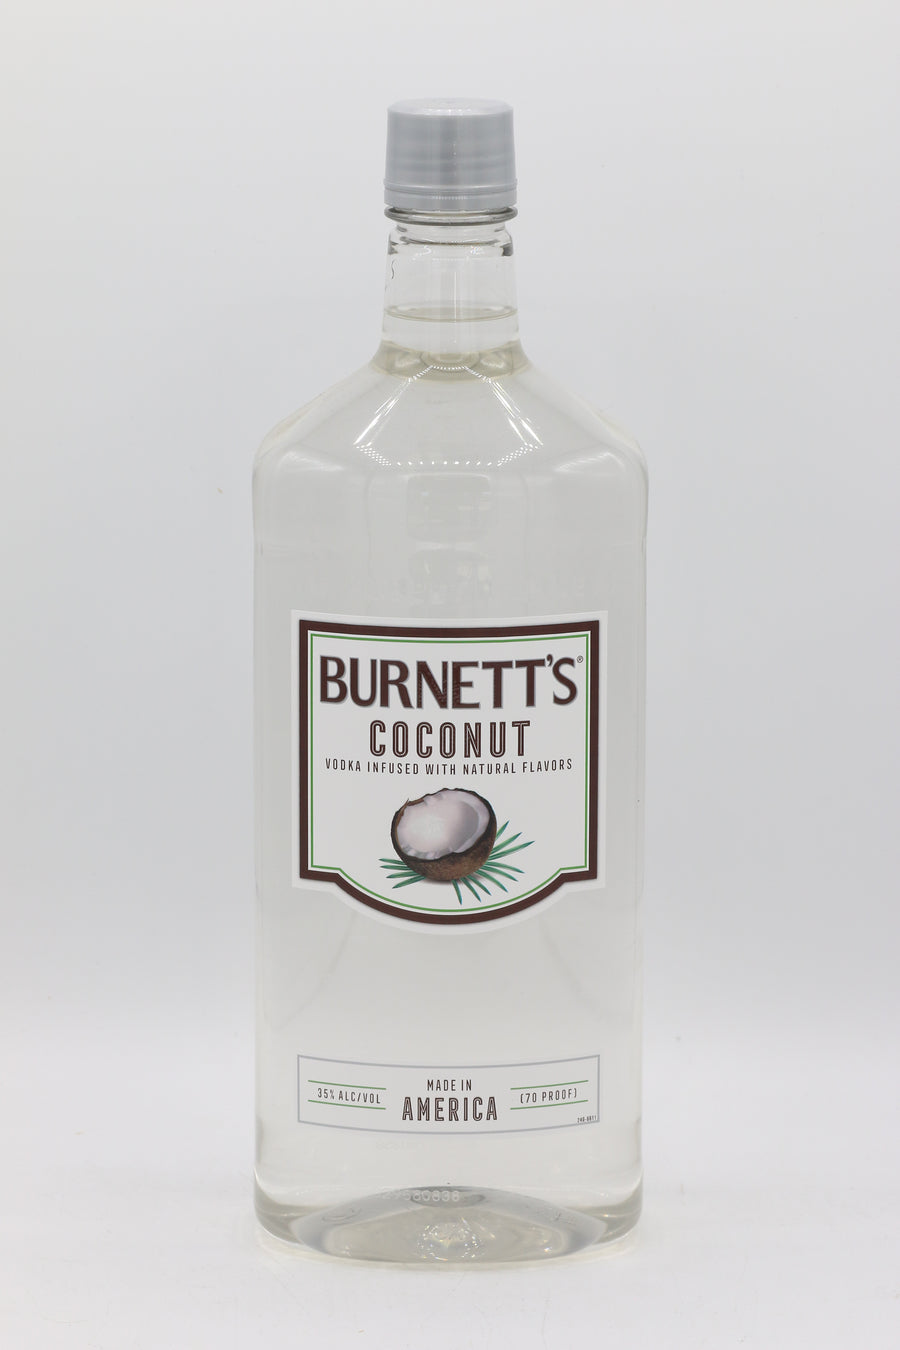 BURNETTS COCONUT VODKA 1.75L